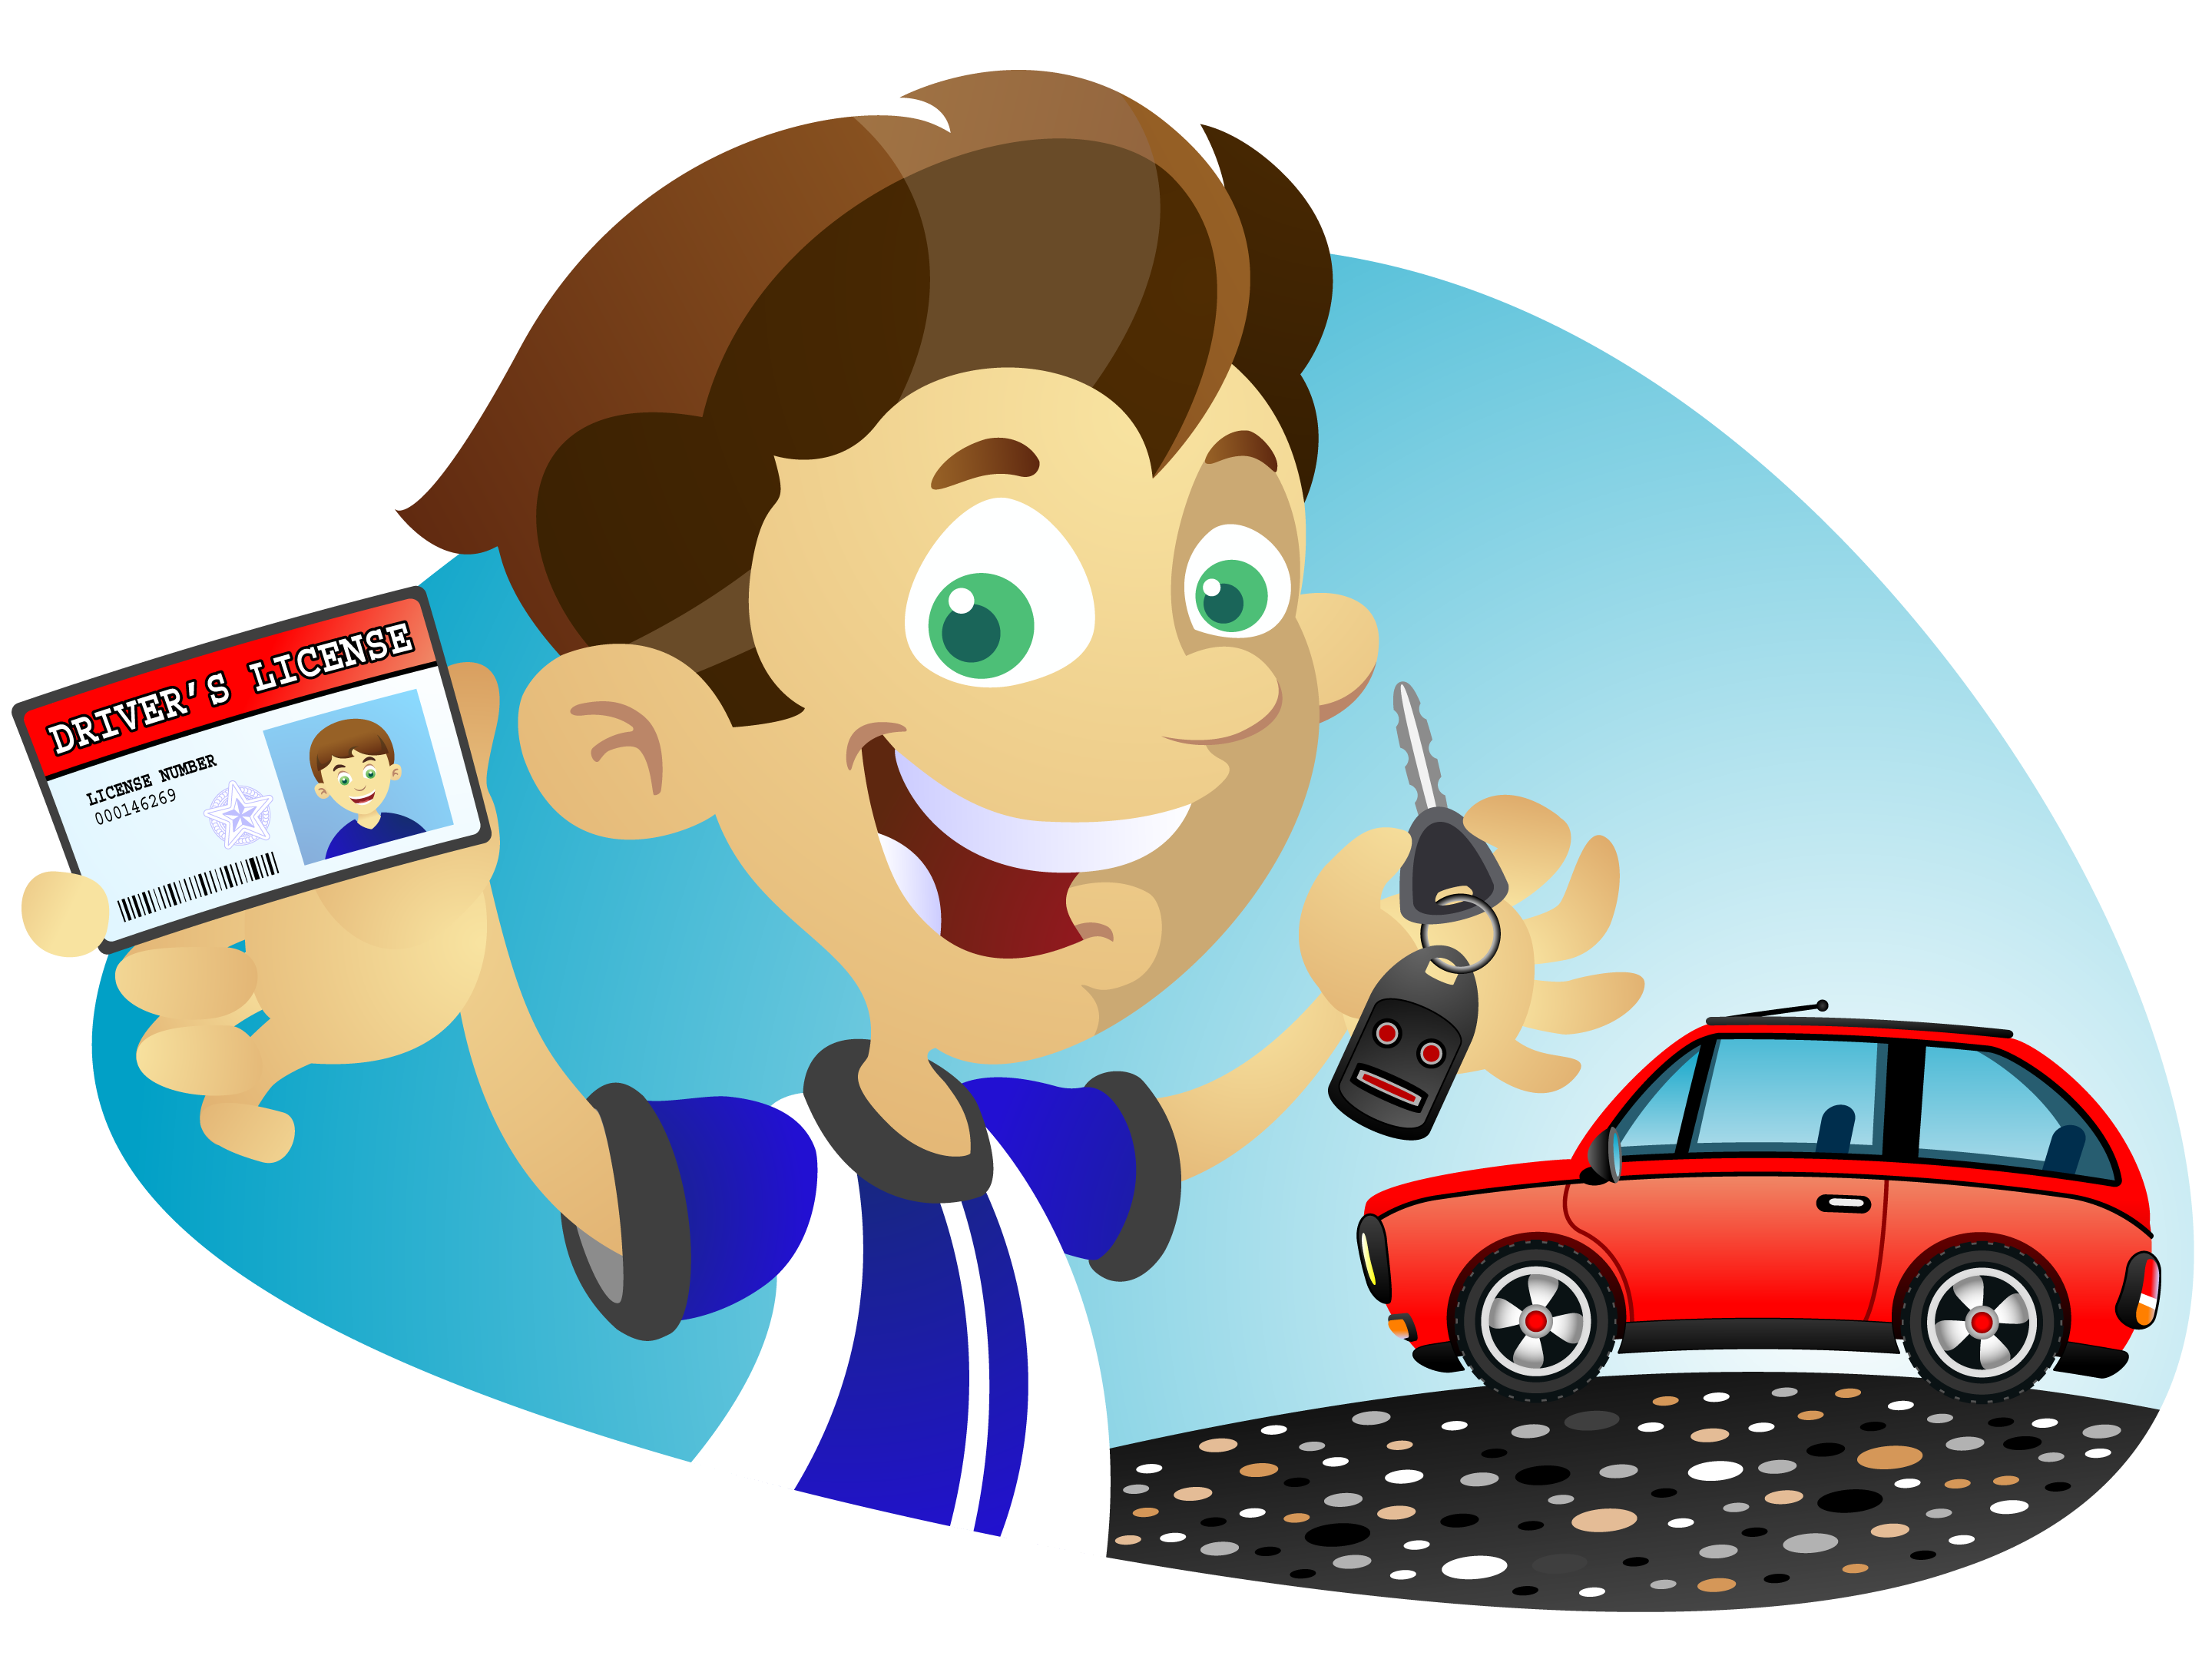 Drivers license clipart learners. Weybridge driving lessons hours